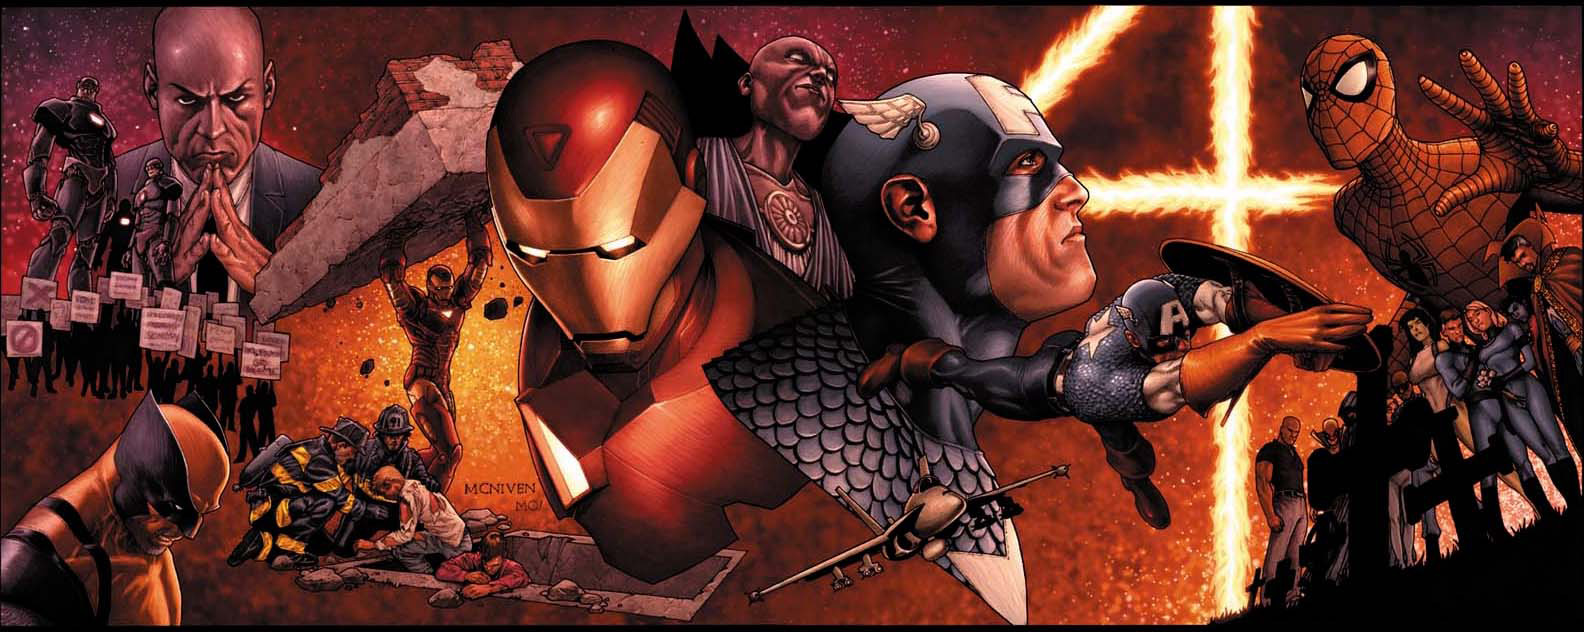 Civil-War, Mc-Niven